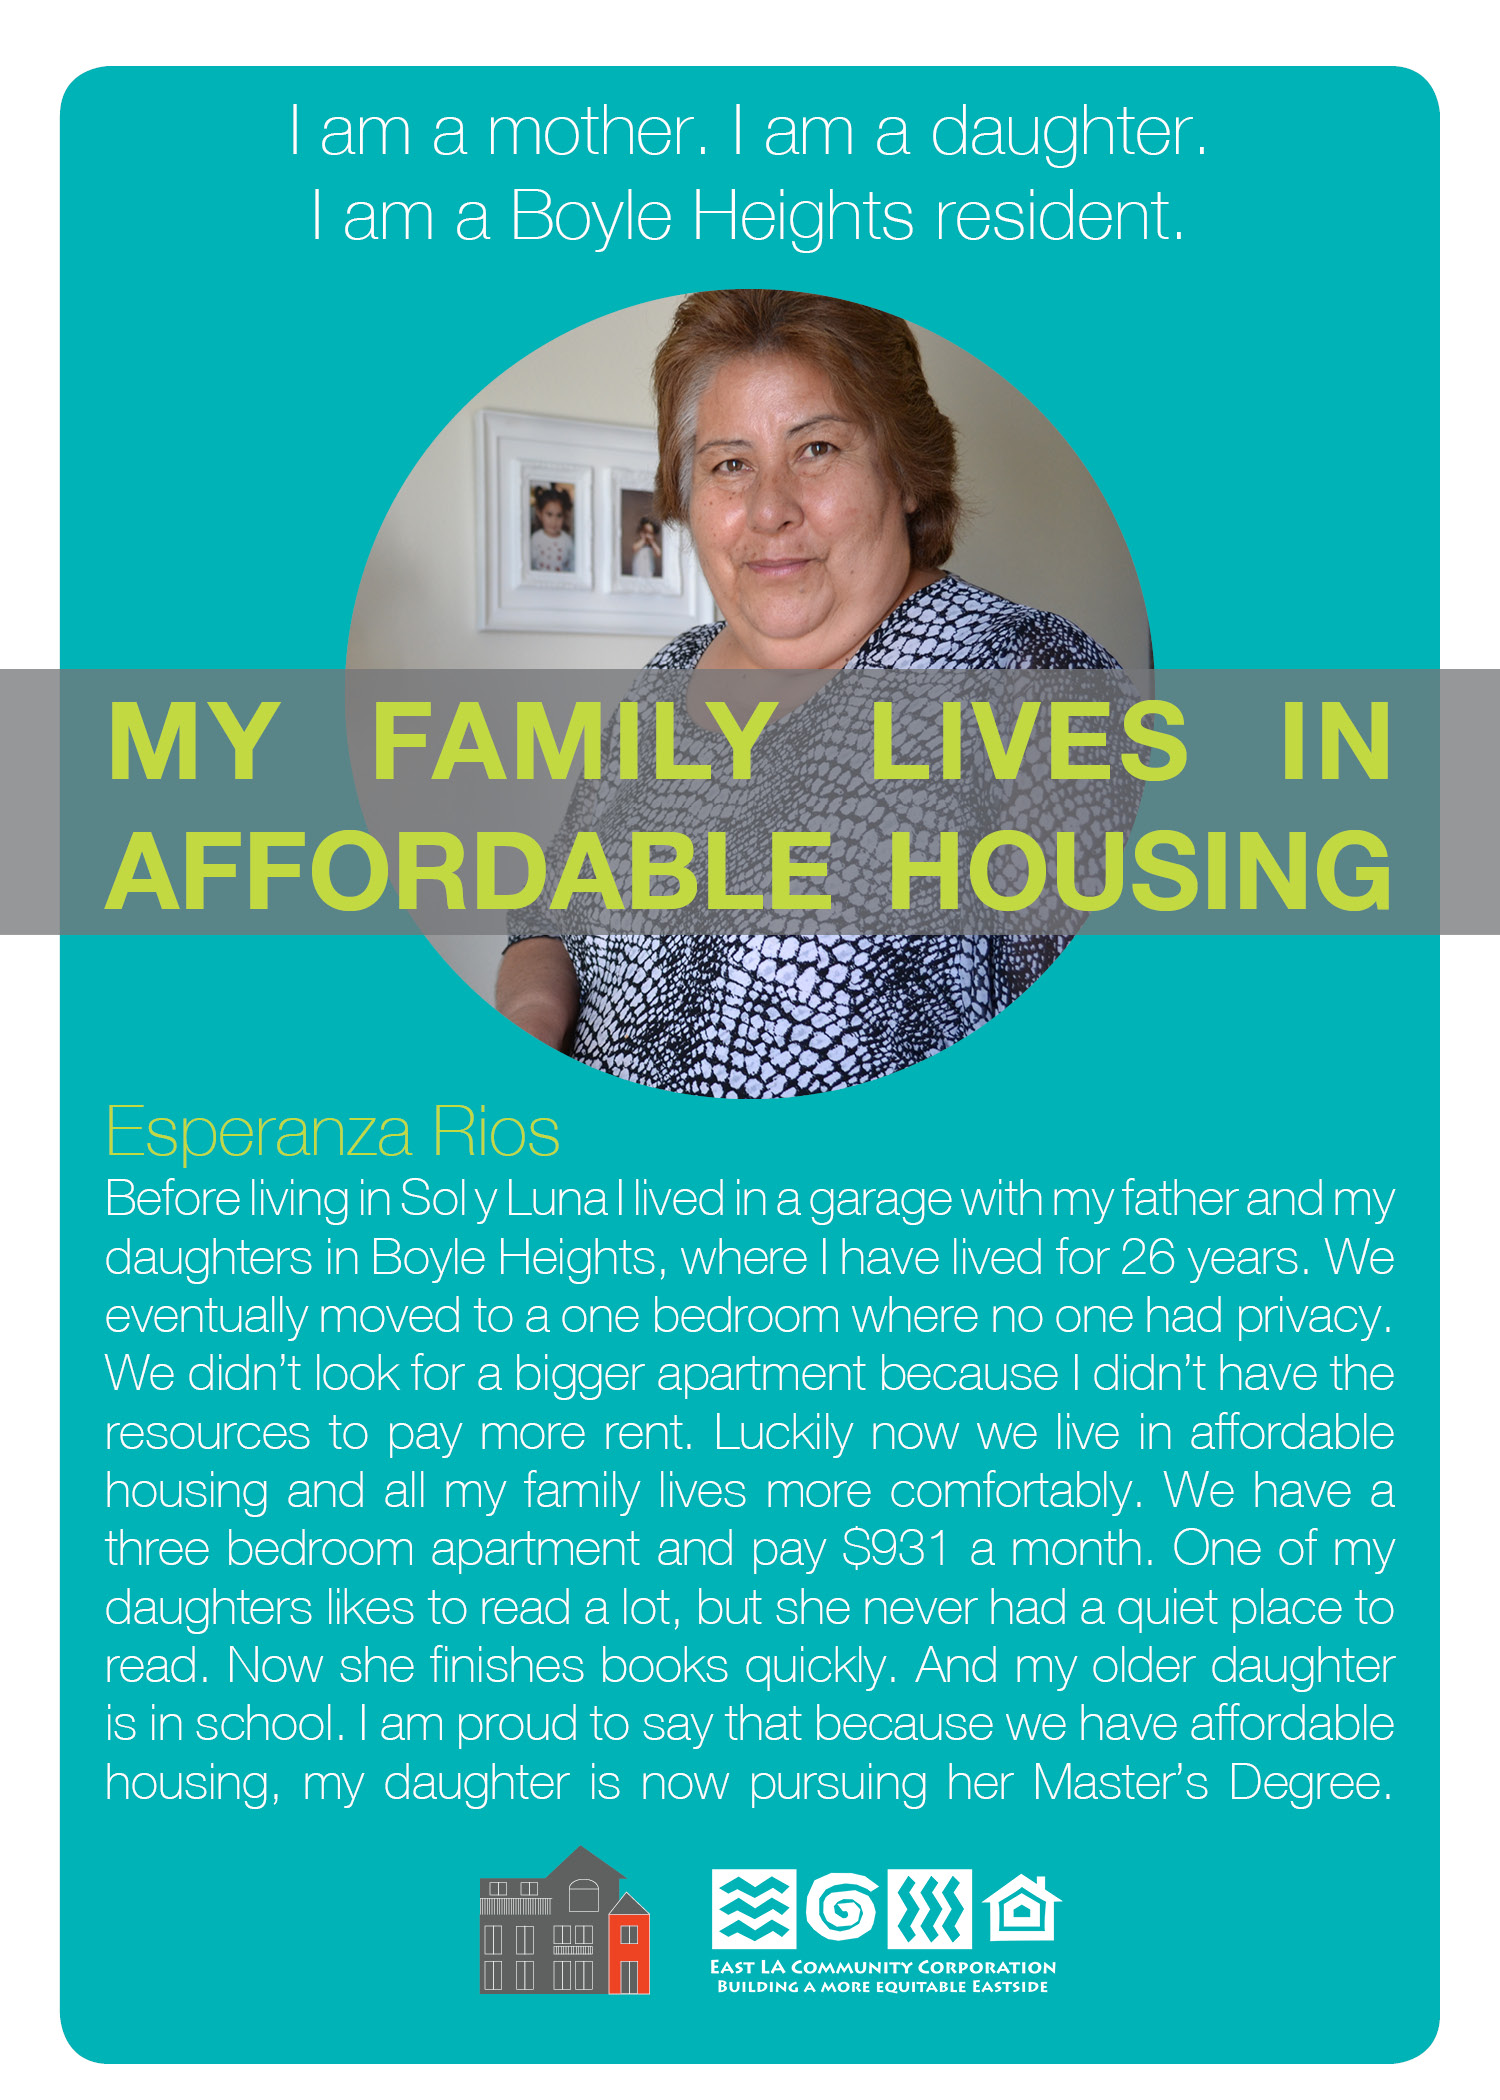 1_-_Live_in_Affordable_Housing-Esperanza-_JPEG.jpg